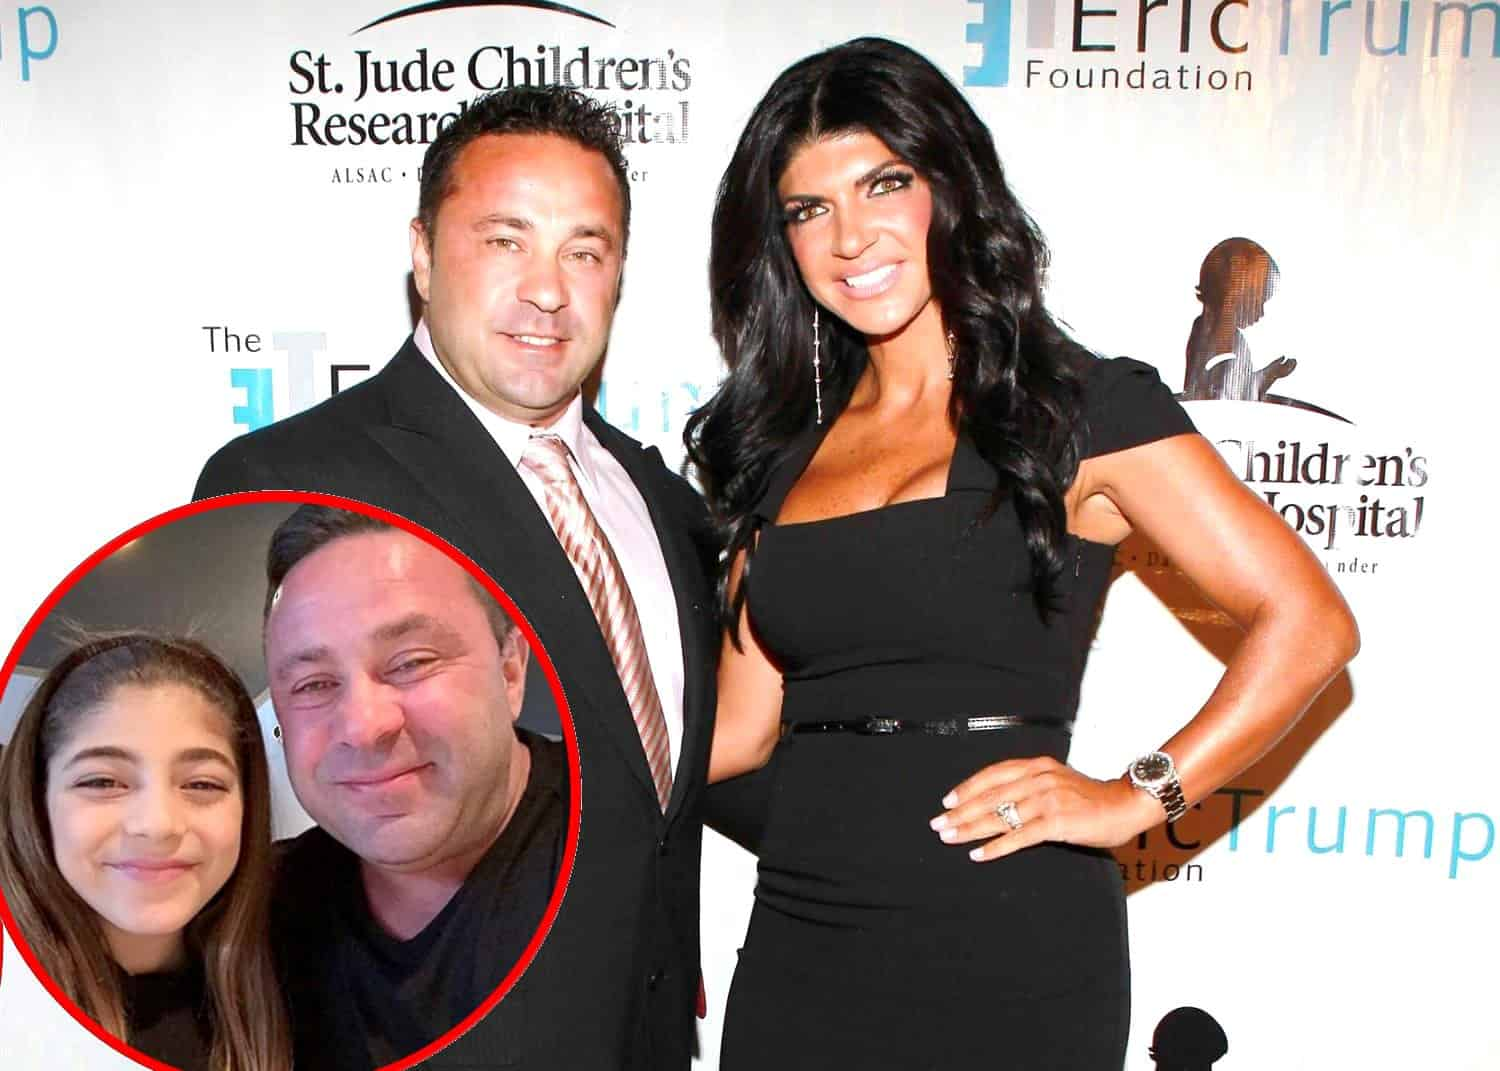 RHONJ's Teresa Giudice 'Hasn't Done Anything' to Help Joe from Being Deported, Milania Speaks Out